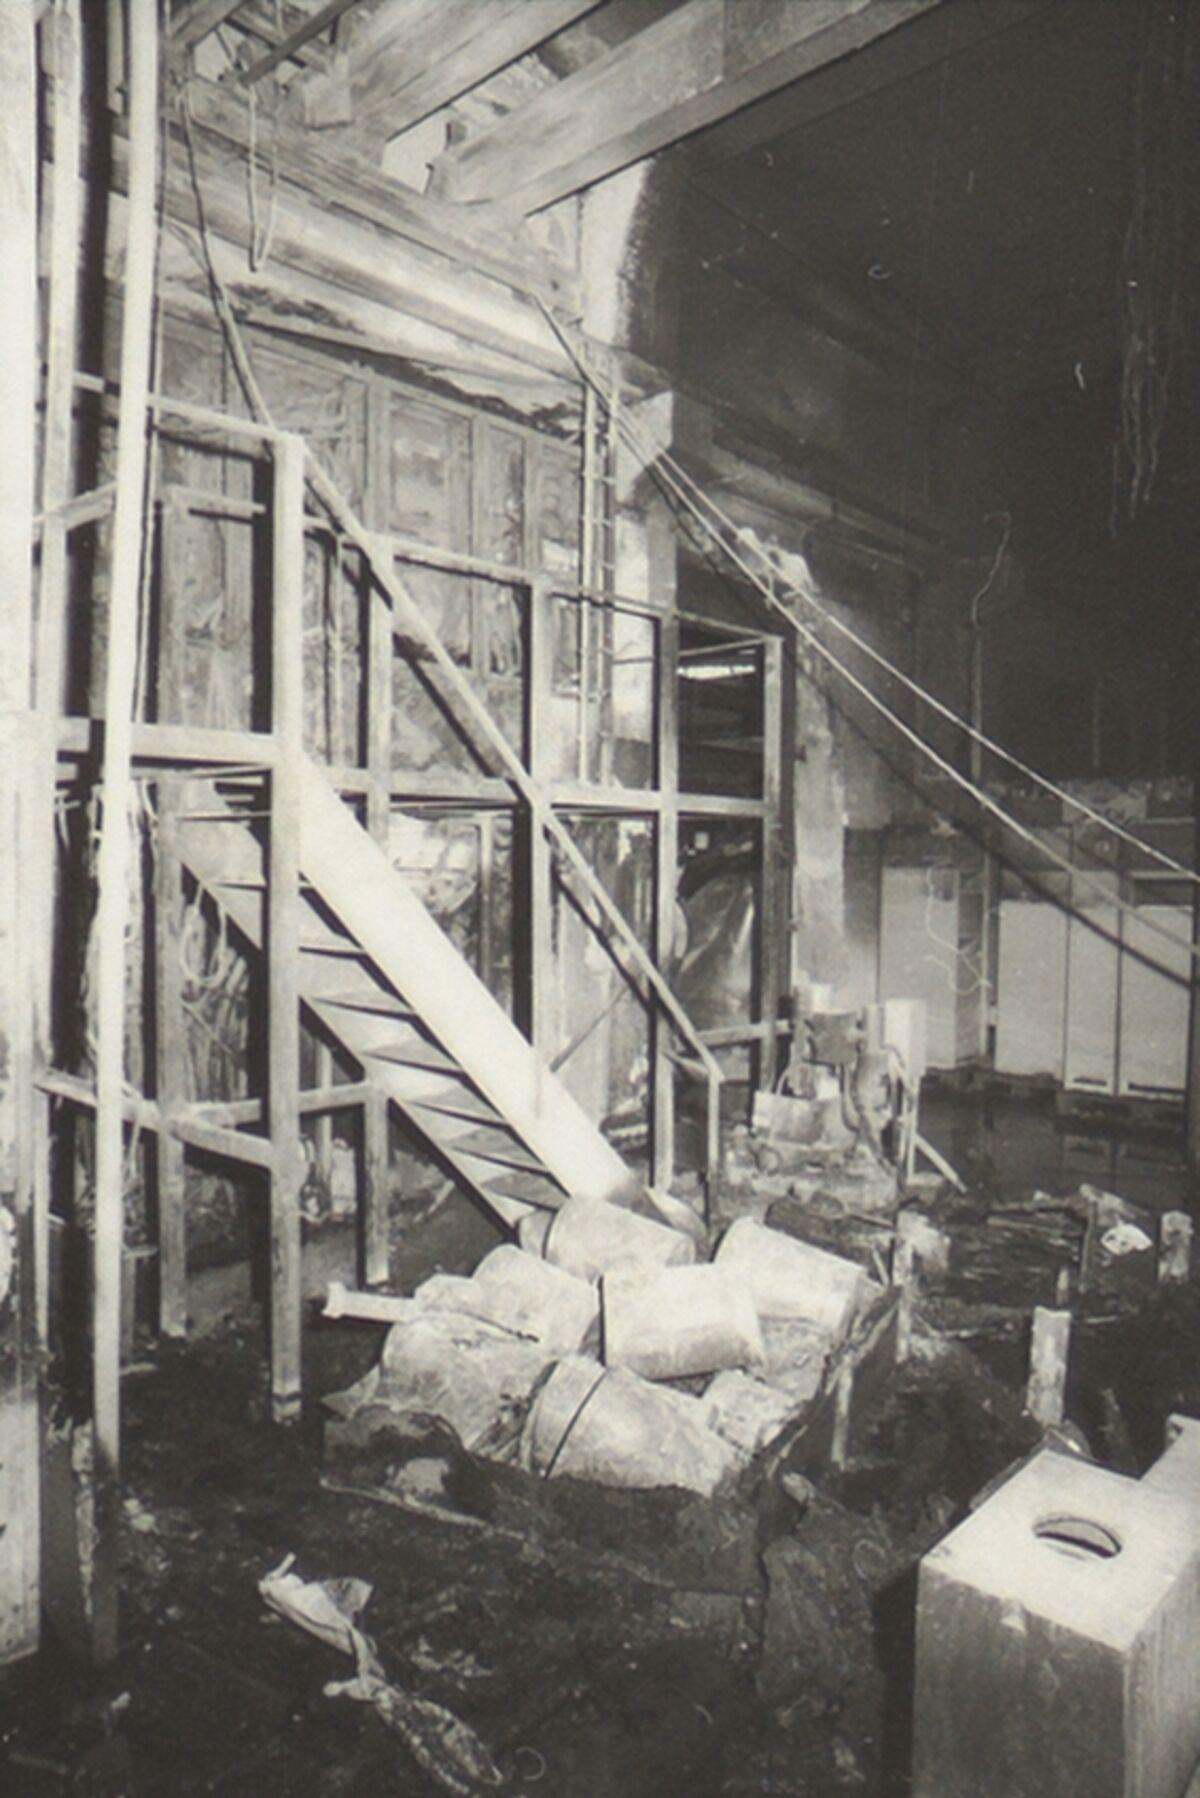 GFA 42/62230: Photo report of the storm catastrophe 1978